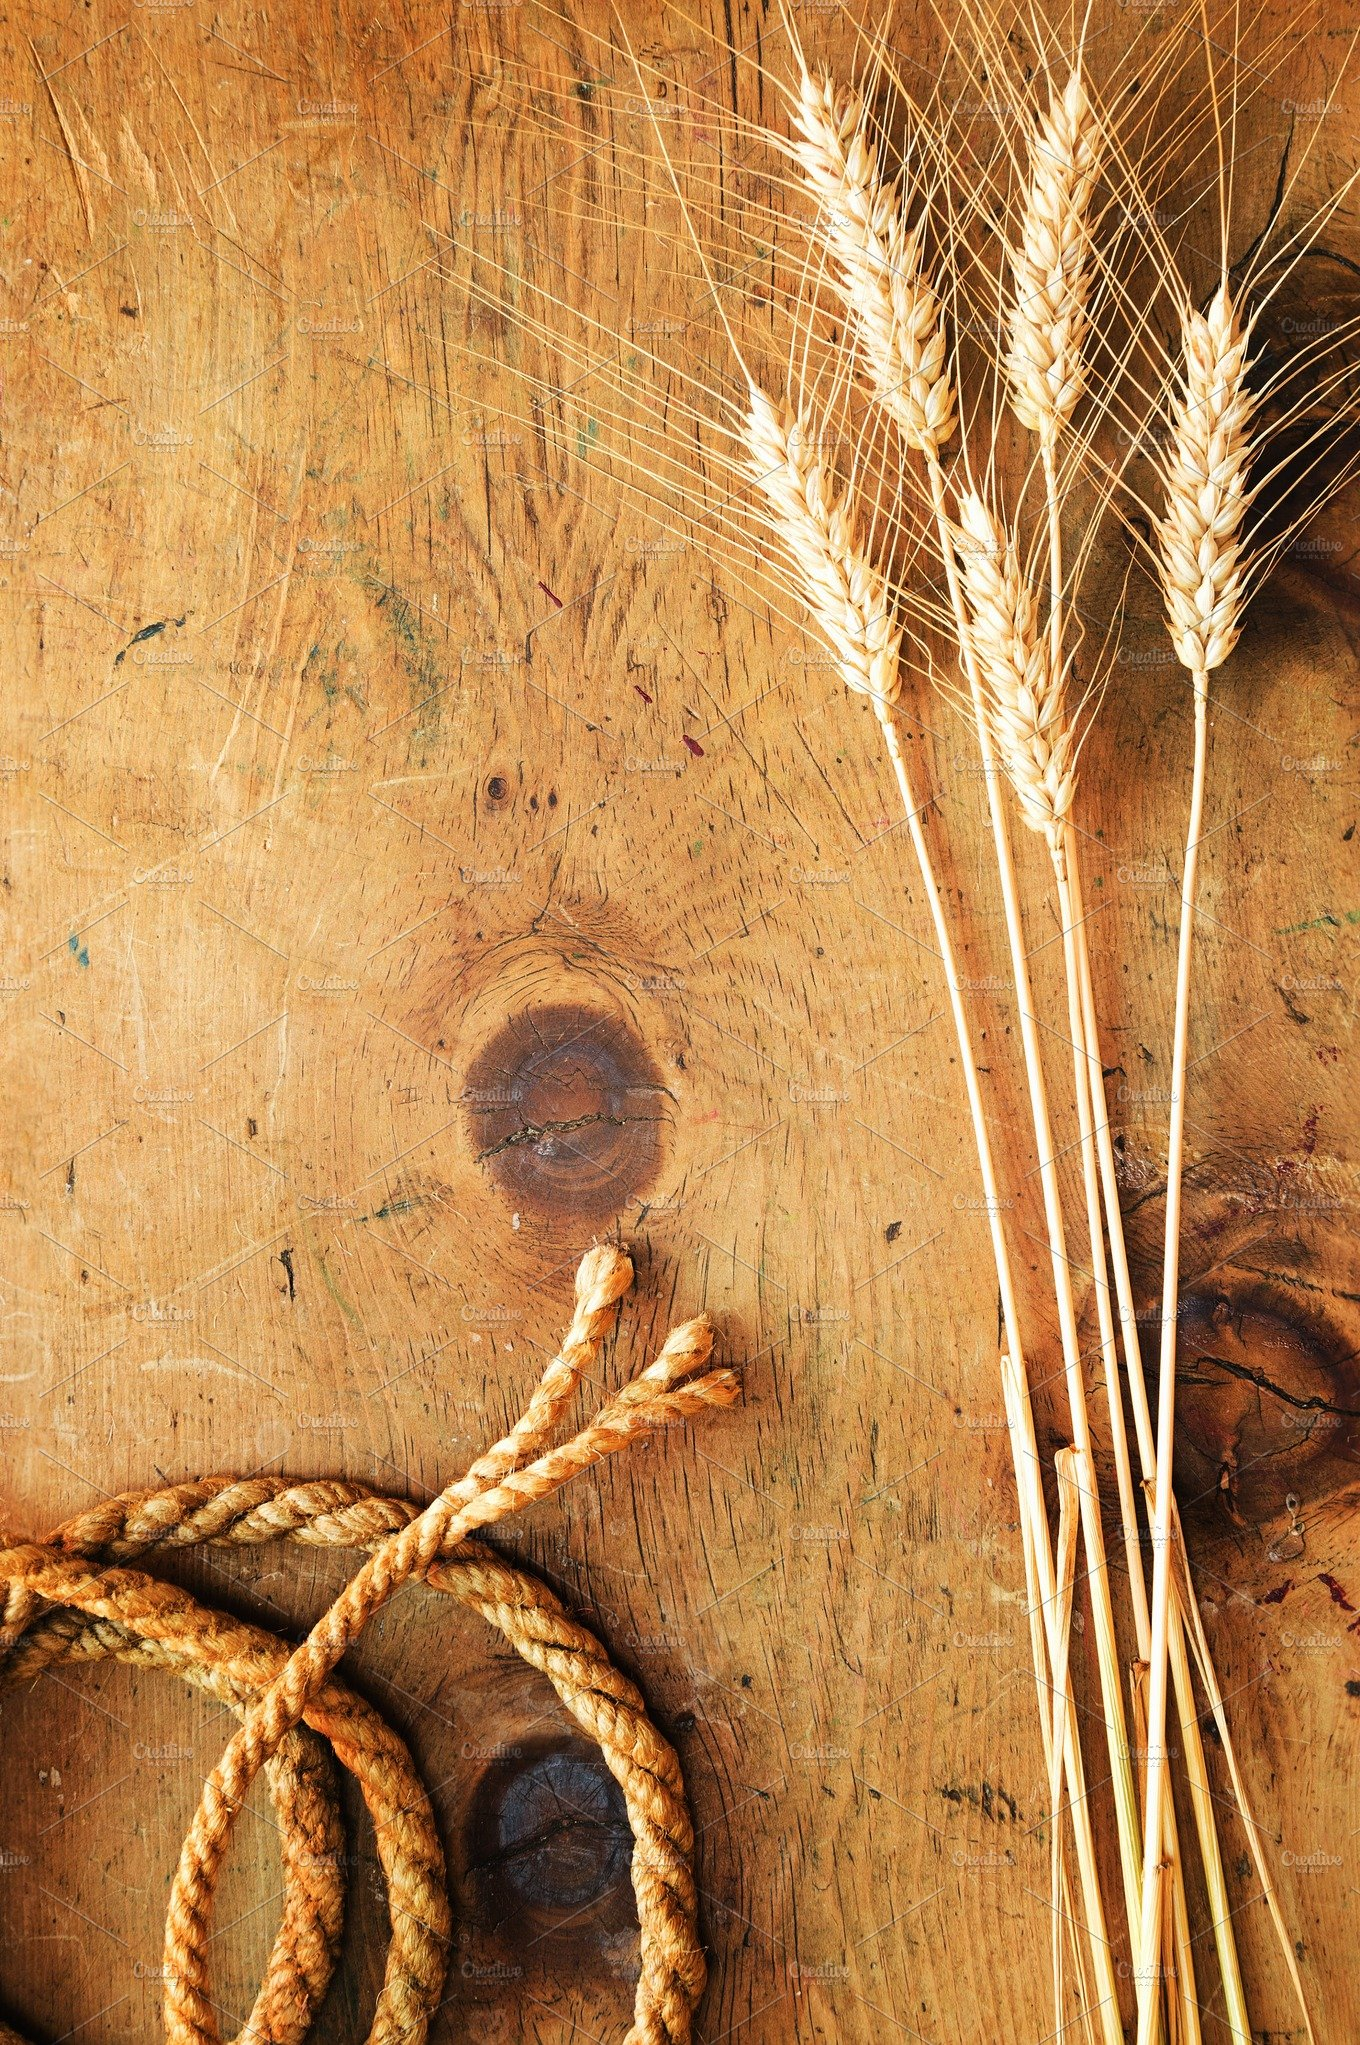 Vintage Wheat And Rope 2 Industrial Photos Creative Market